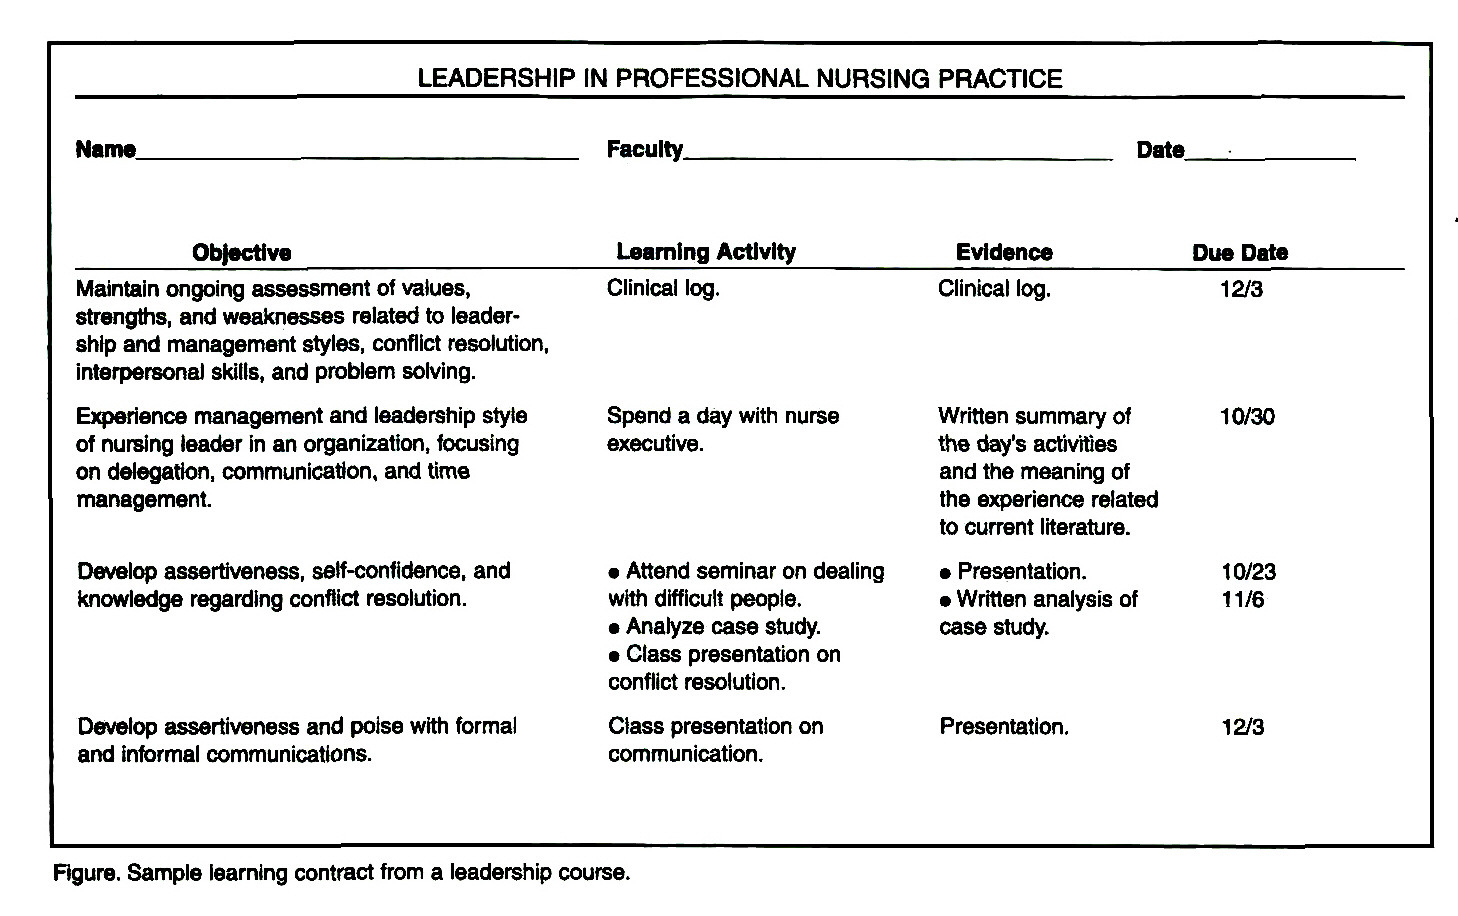 learning agreement for studies 4 The acquisition of quality clinical experience within a supportive and pedagogically adjusted clinical learning environment is a significant concern for educational institutions the quality of clinical learning usually reflects the quality of the curriculum structure the assessment of the clinical settings as learning environment is a significant concern within the contemporary nursing.